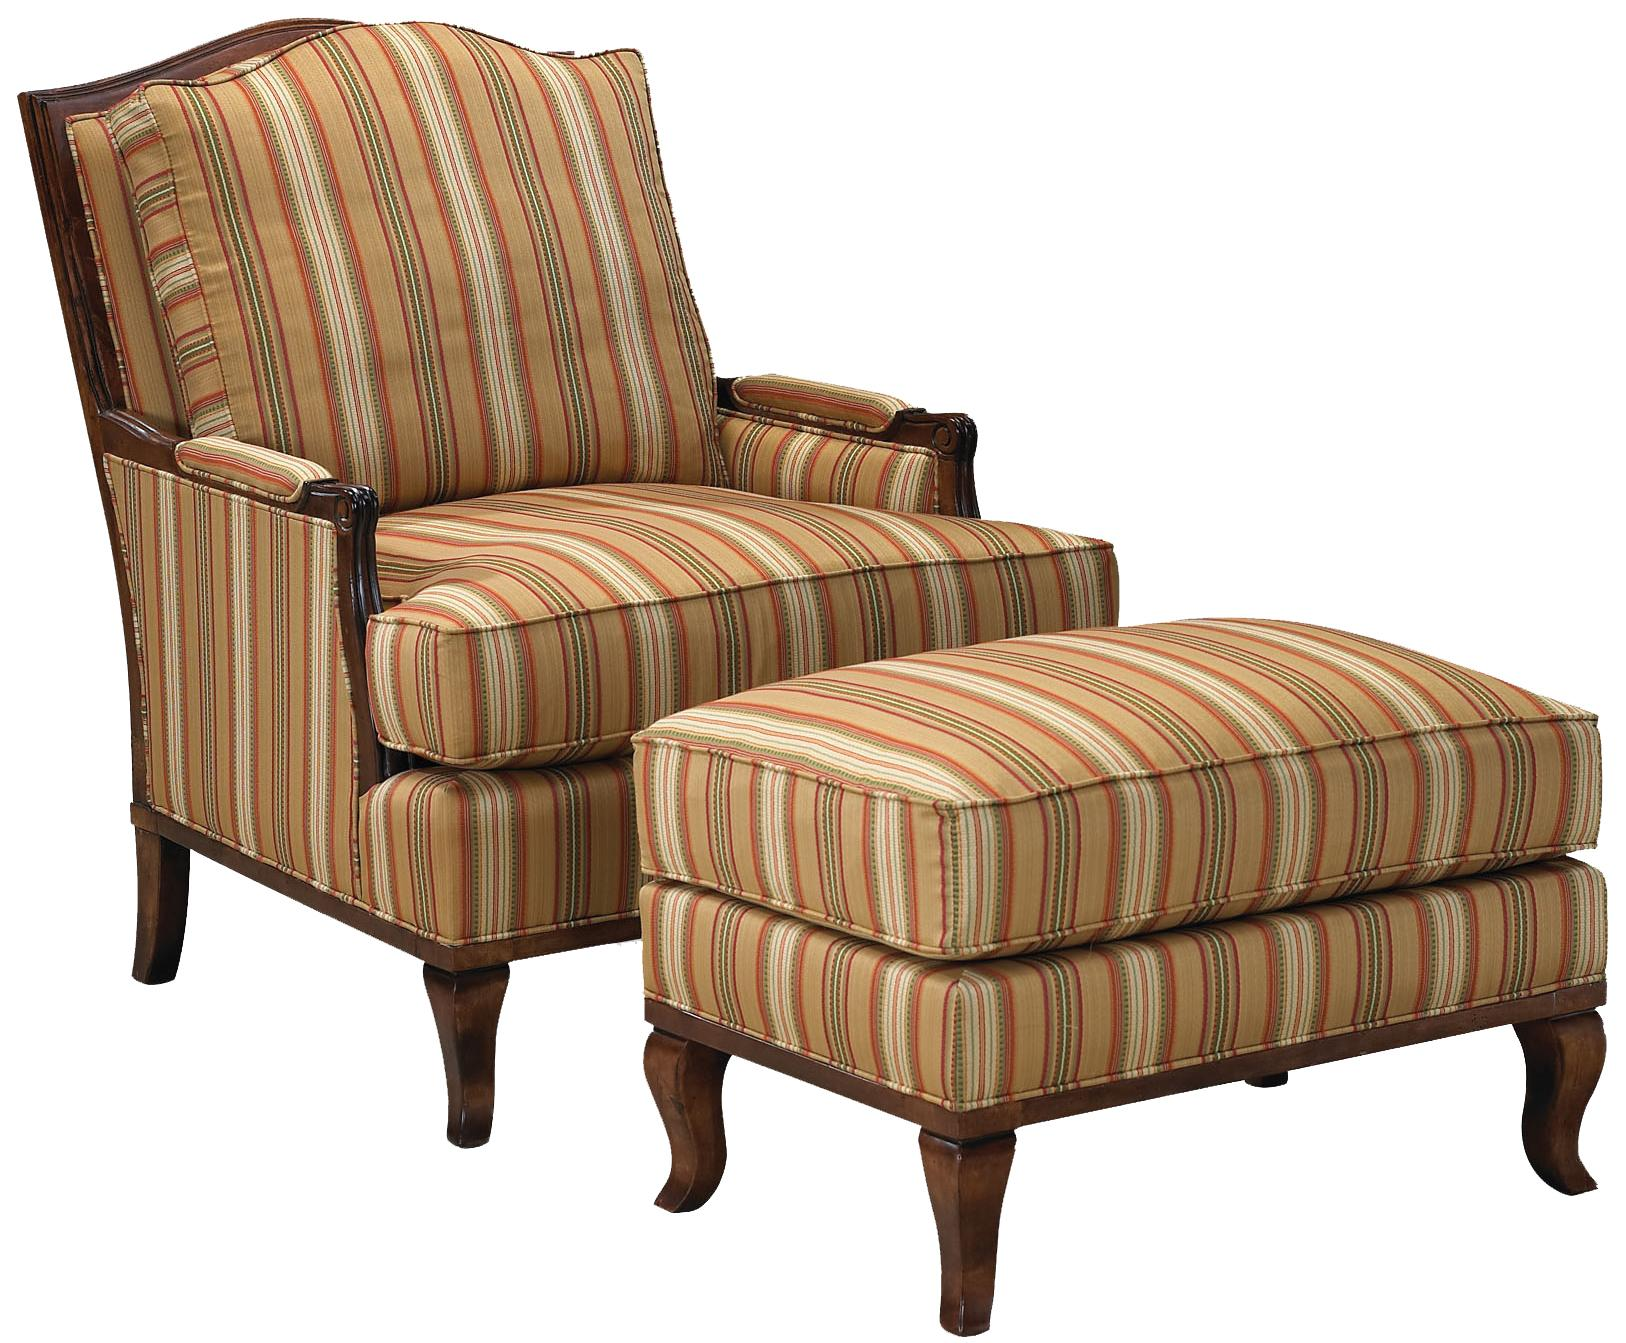 Fairfield 1416 Lounge Chair and Ottoman - Item Number: 1416-01+20